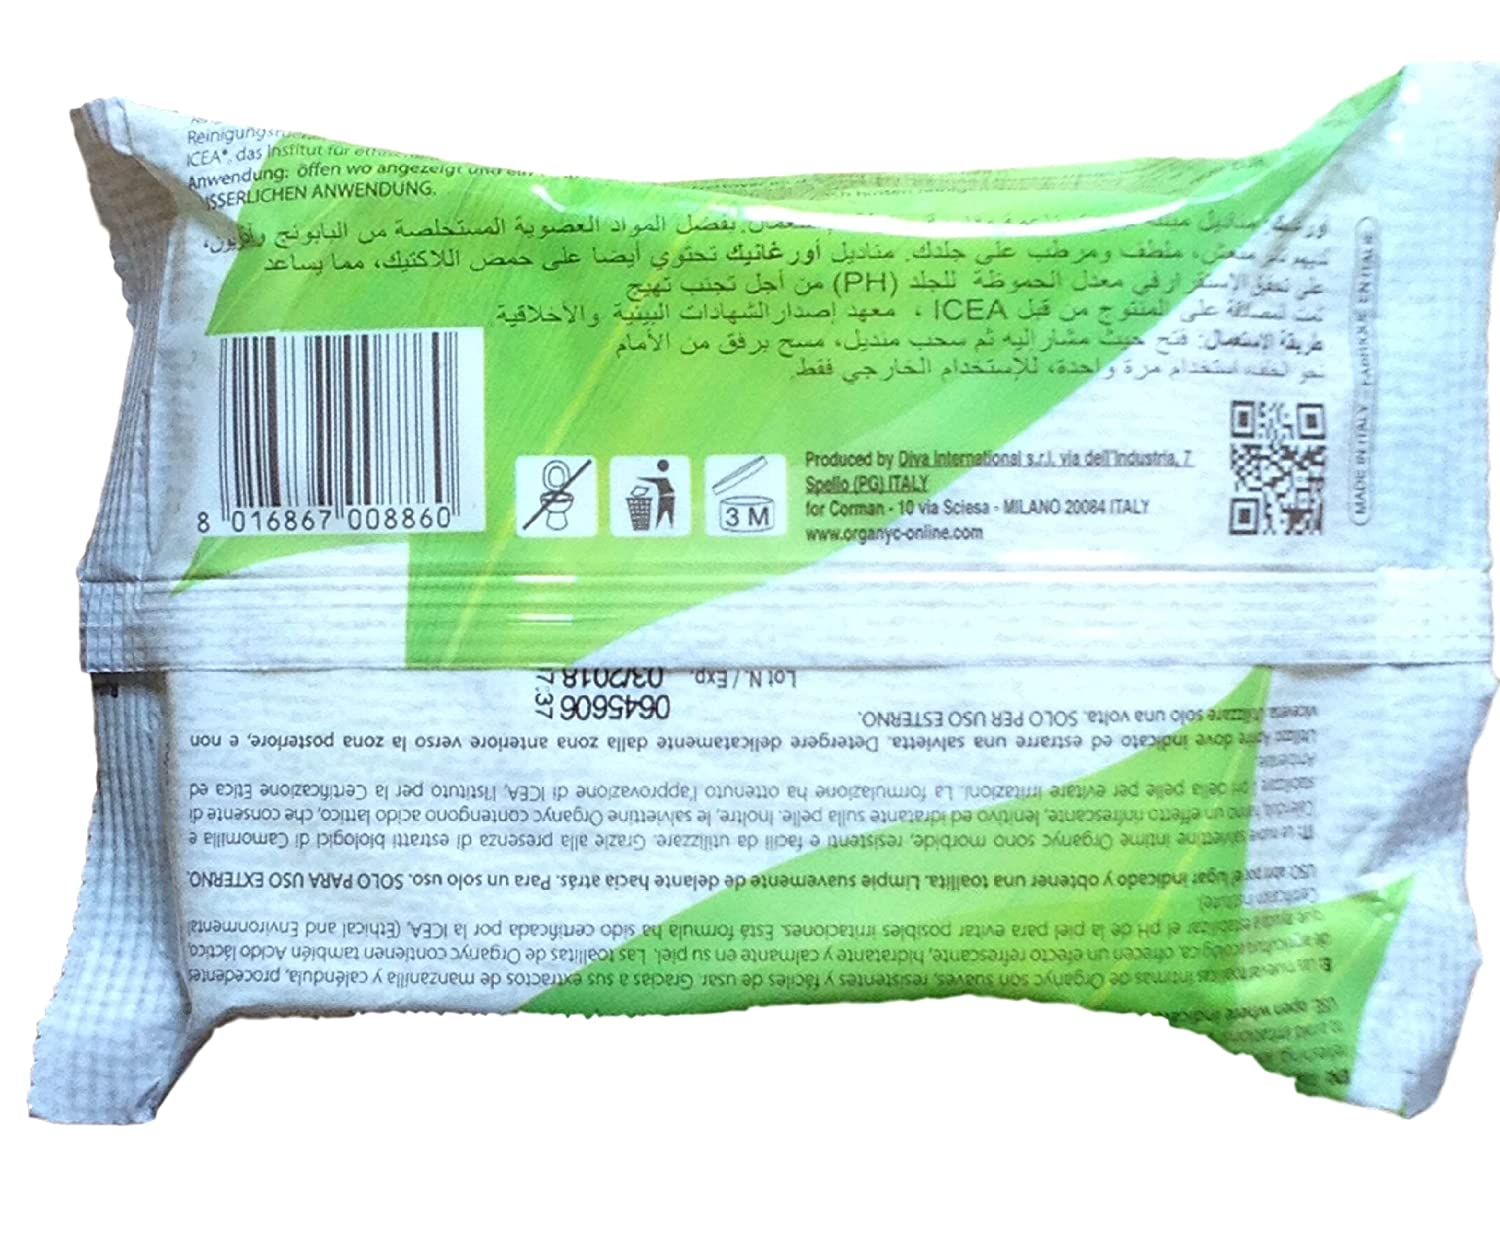 Amazon.com : Organyc - Intimate Hygiene Wet Wipes - Organic Formulation - 20 Count - 3 Pack : Baby